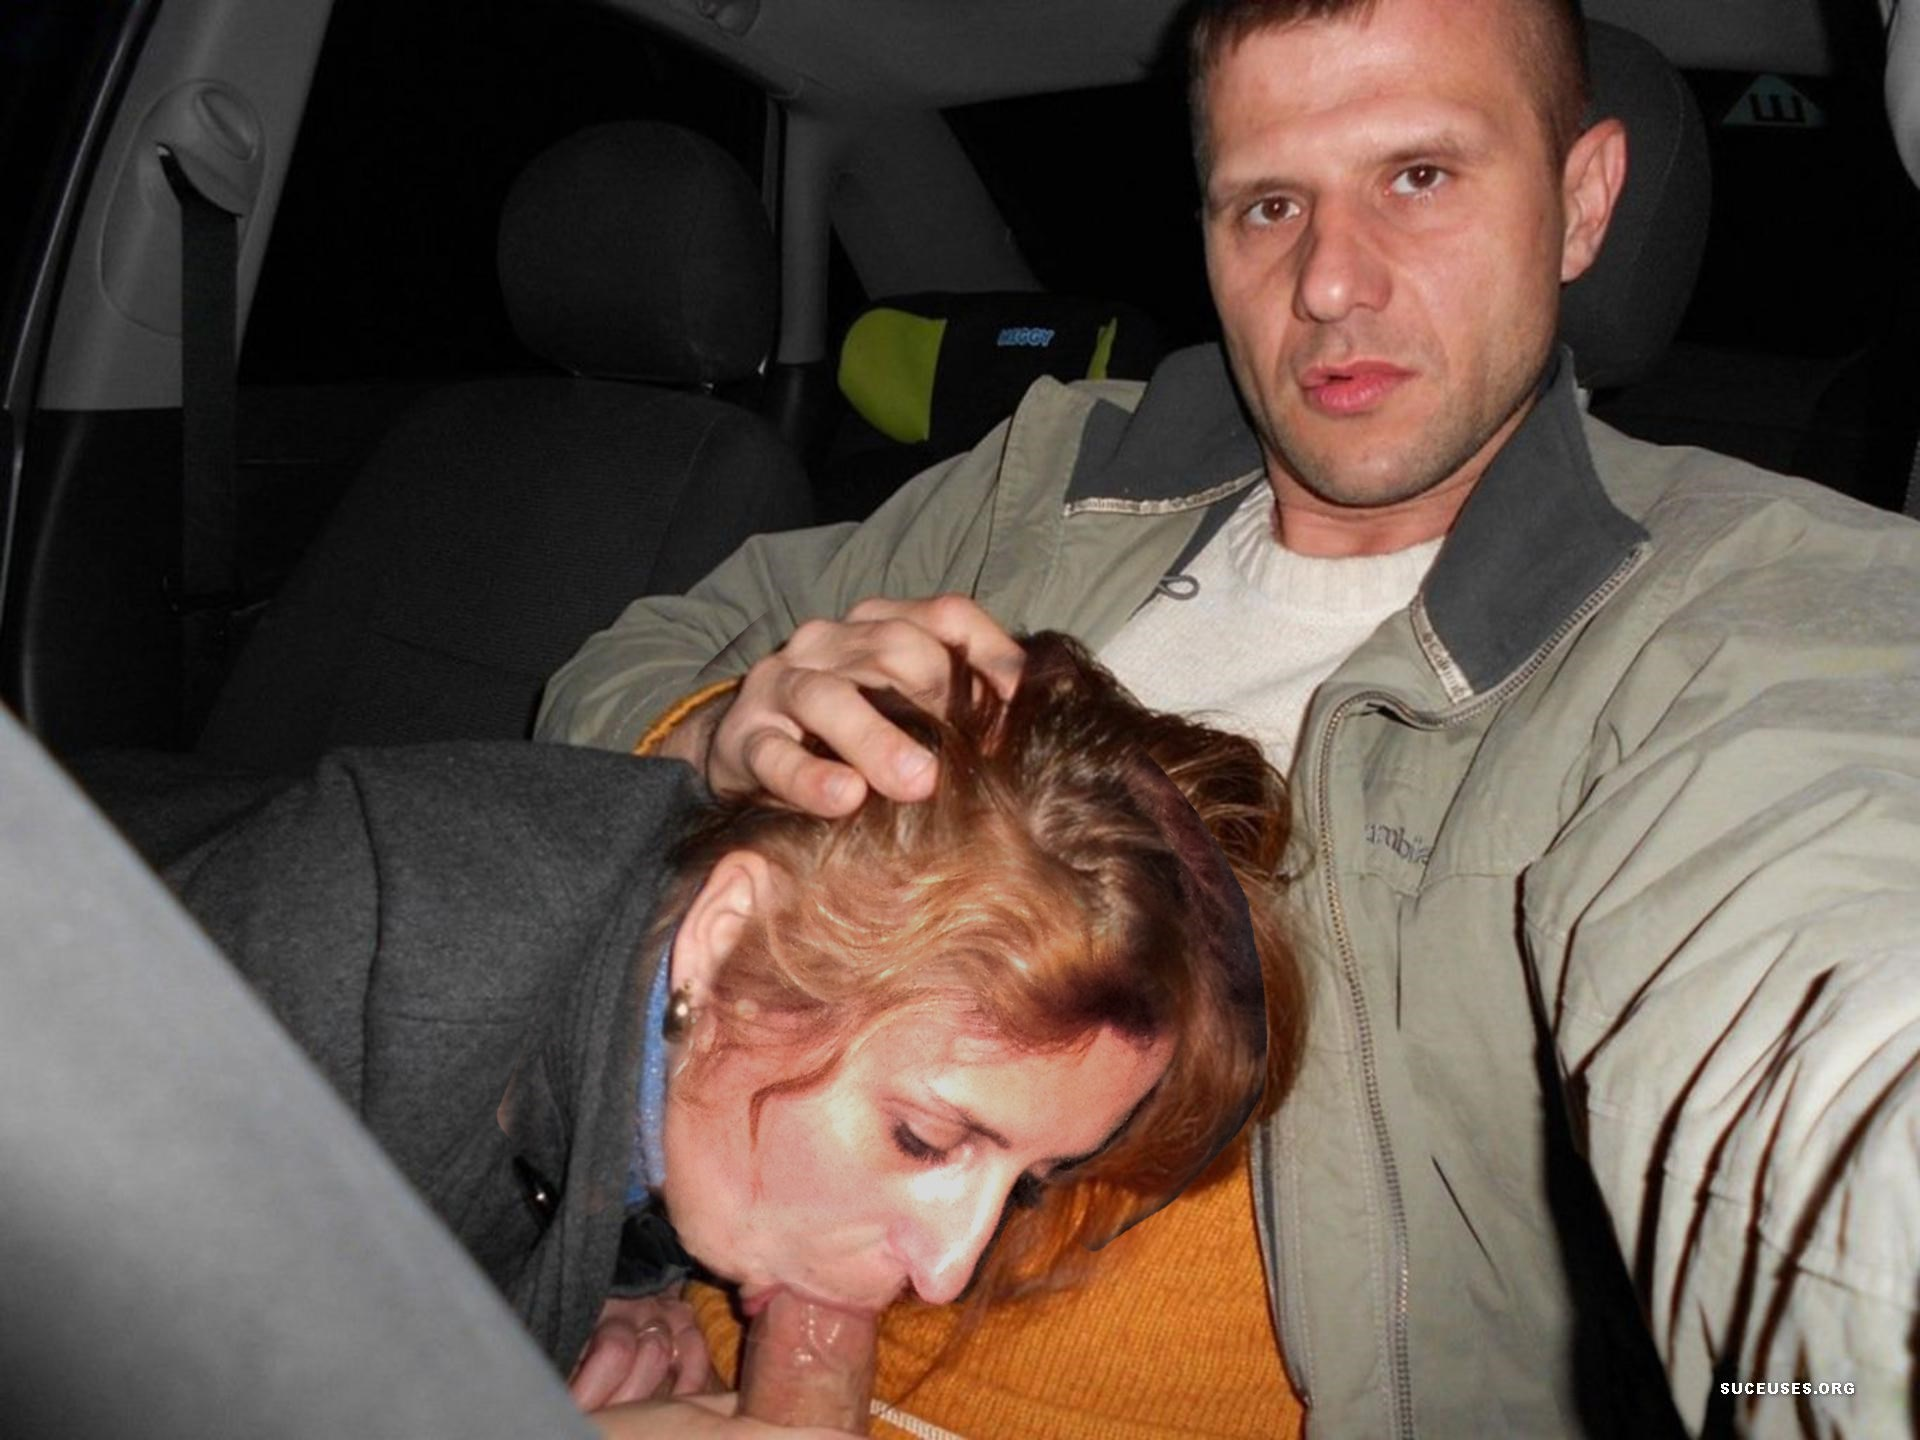 long slow Charlee chase pics open all ethnic